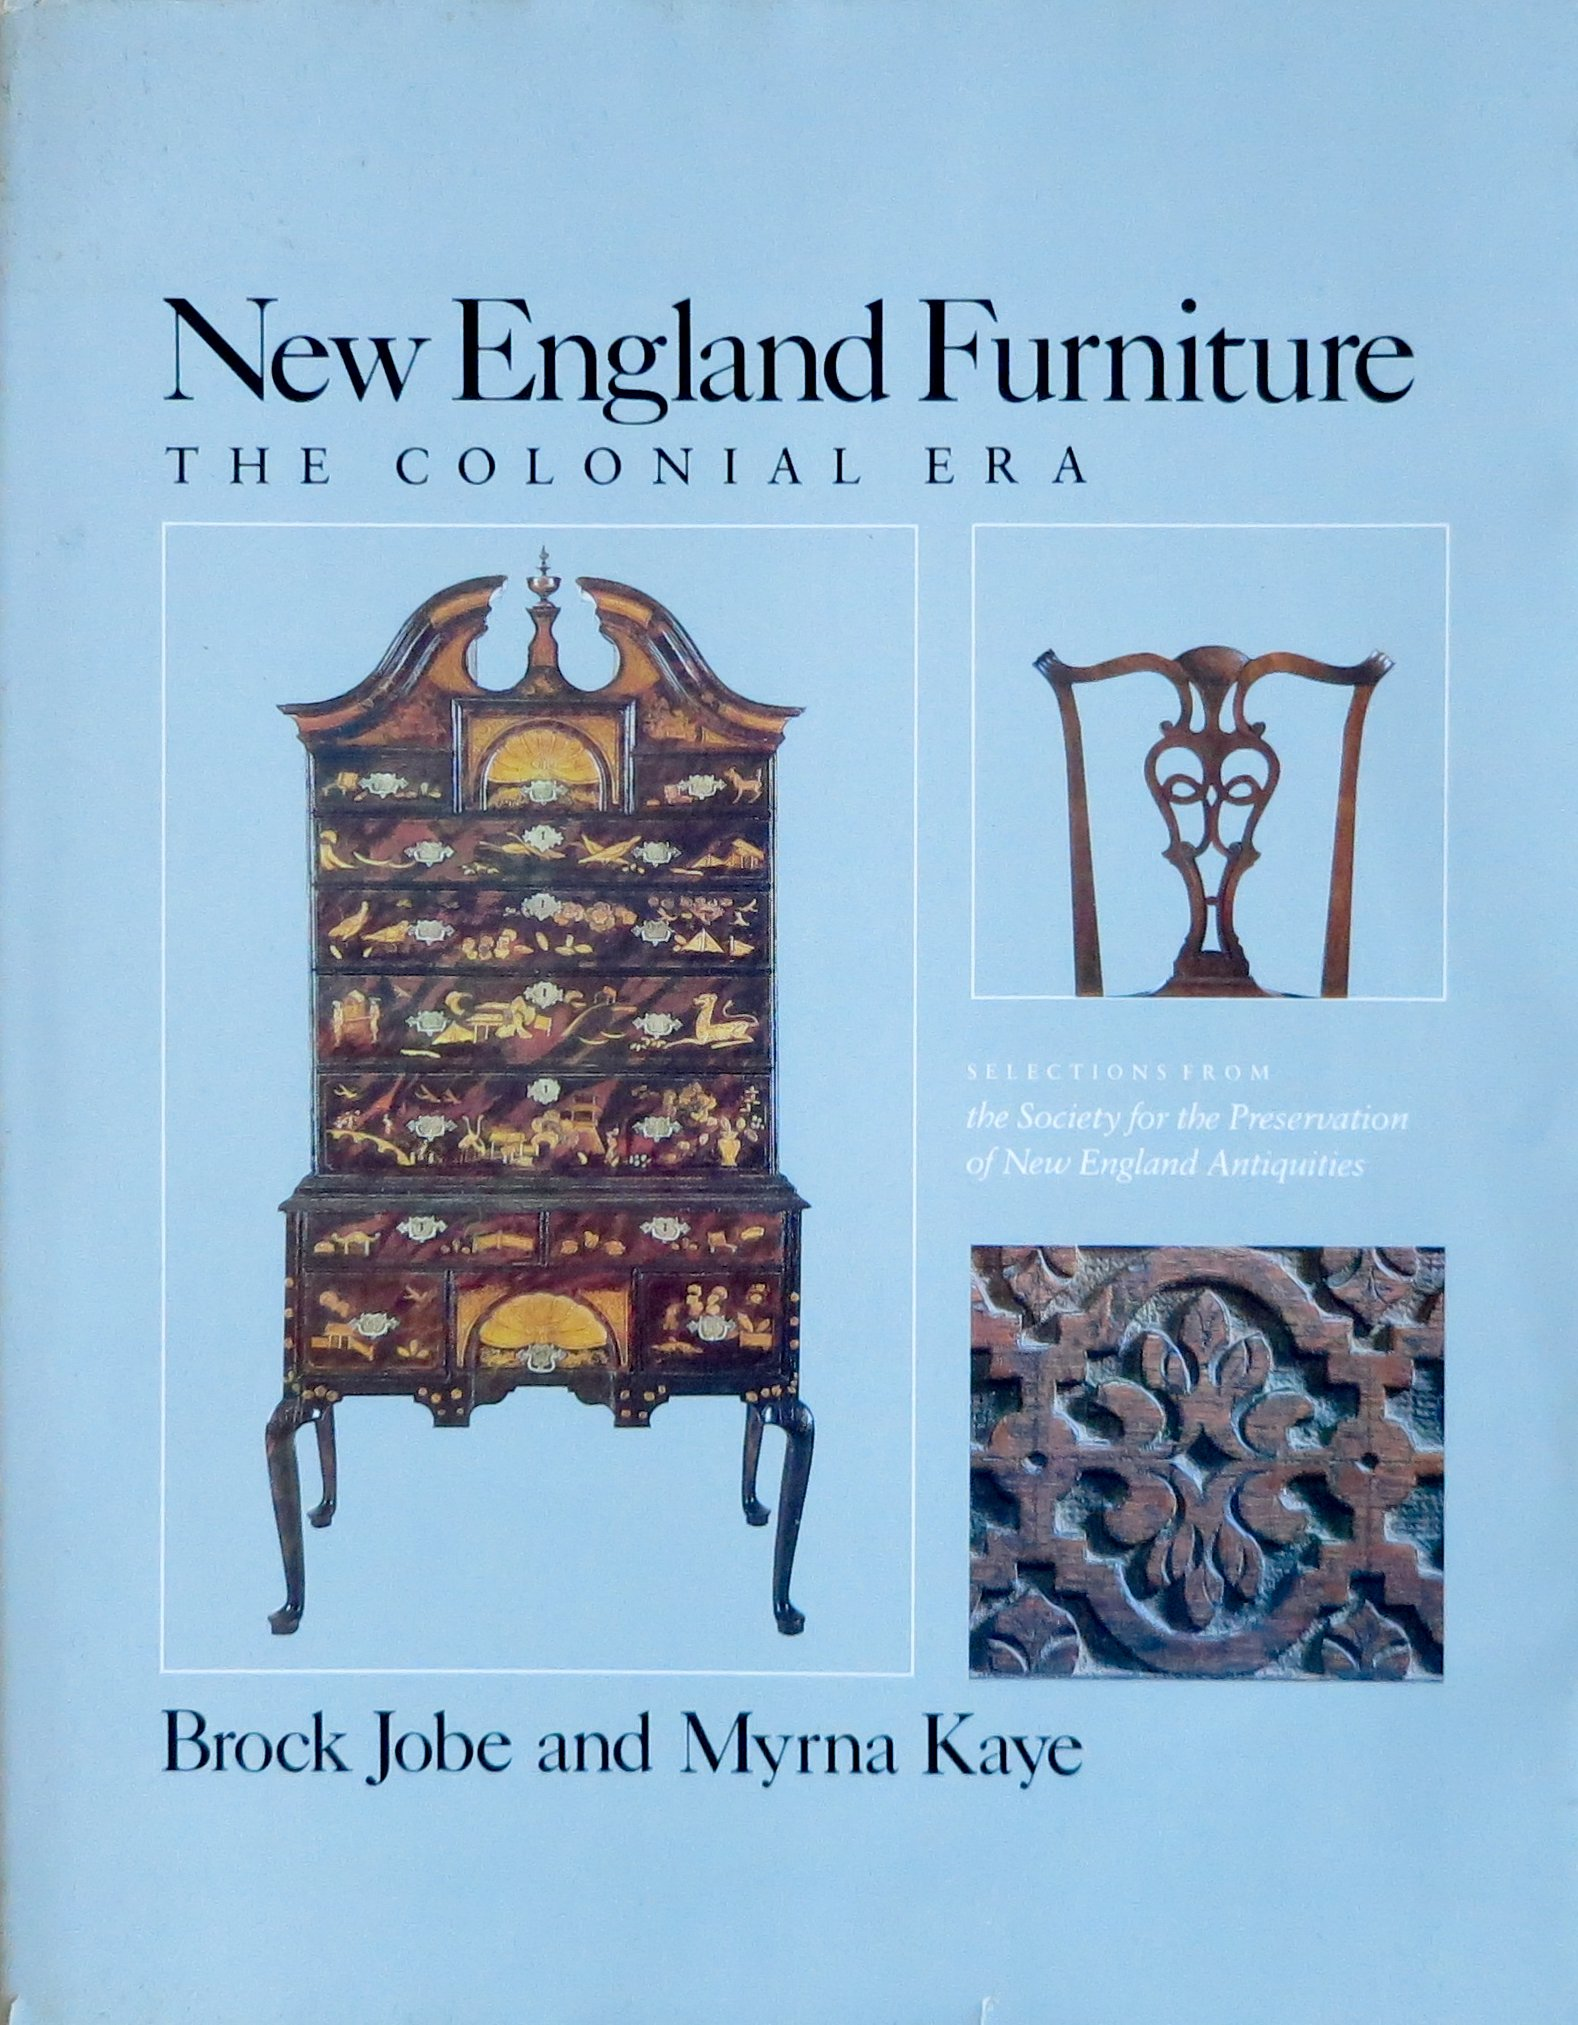 New England Furniture: The Colonial Era